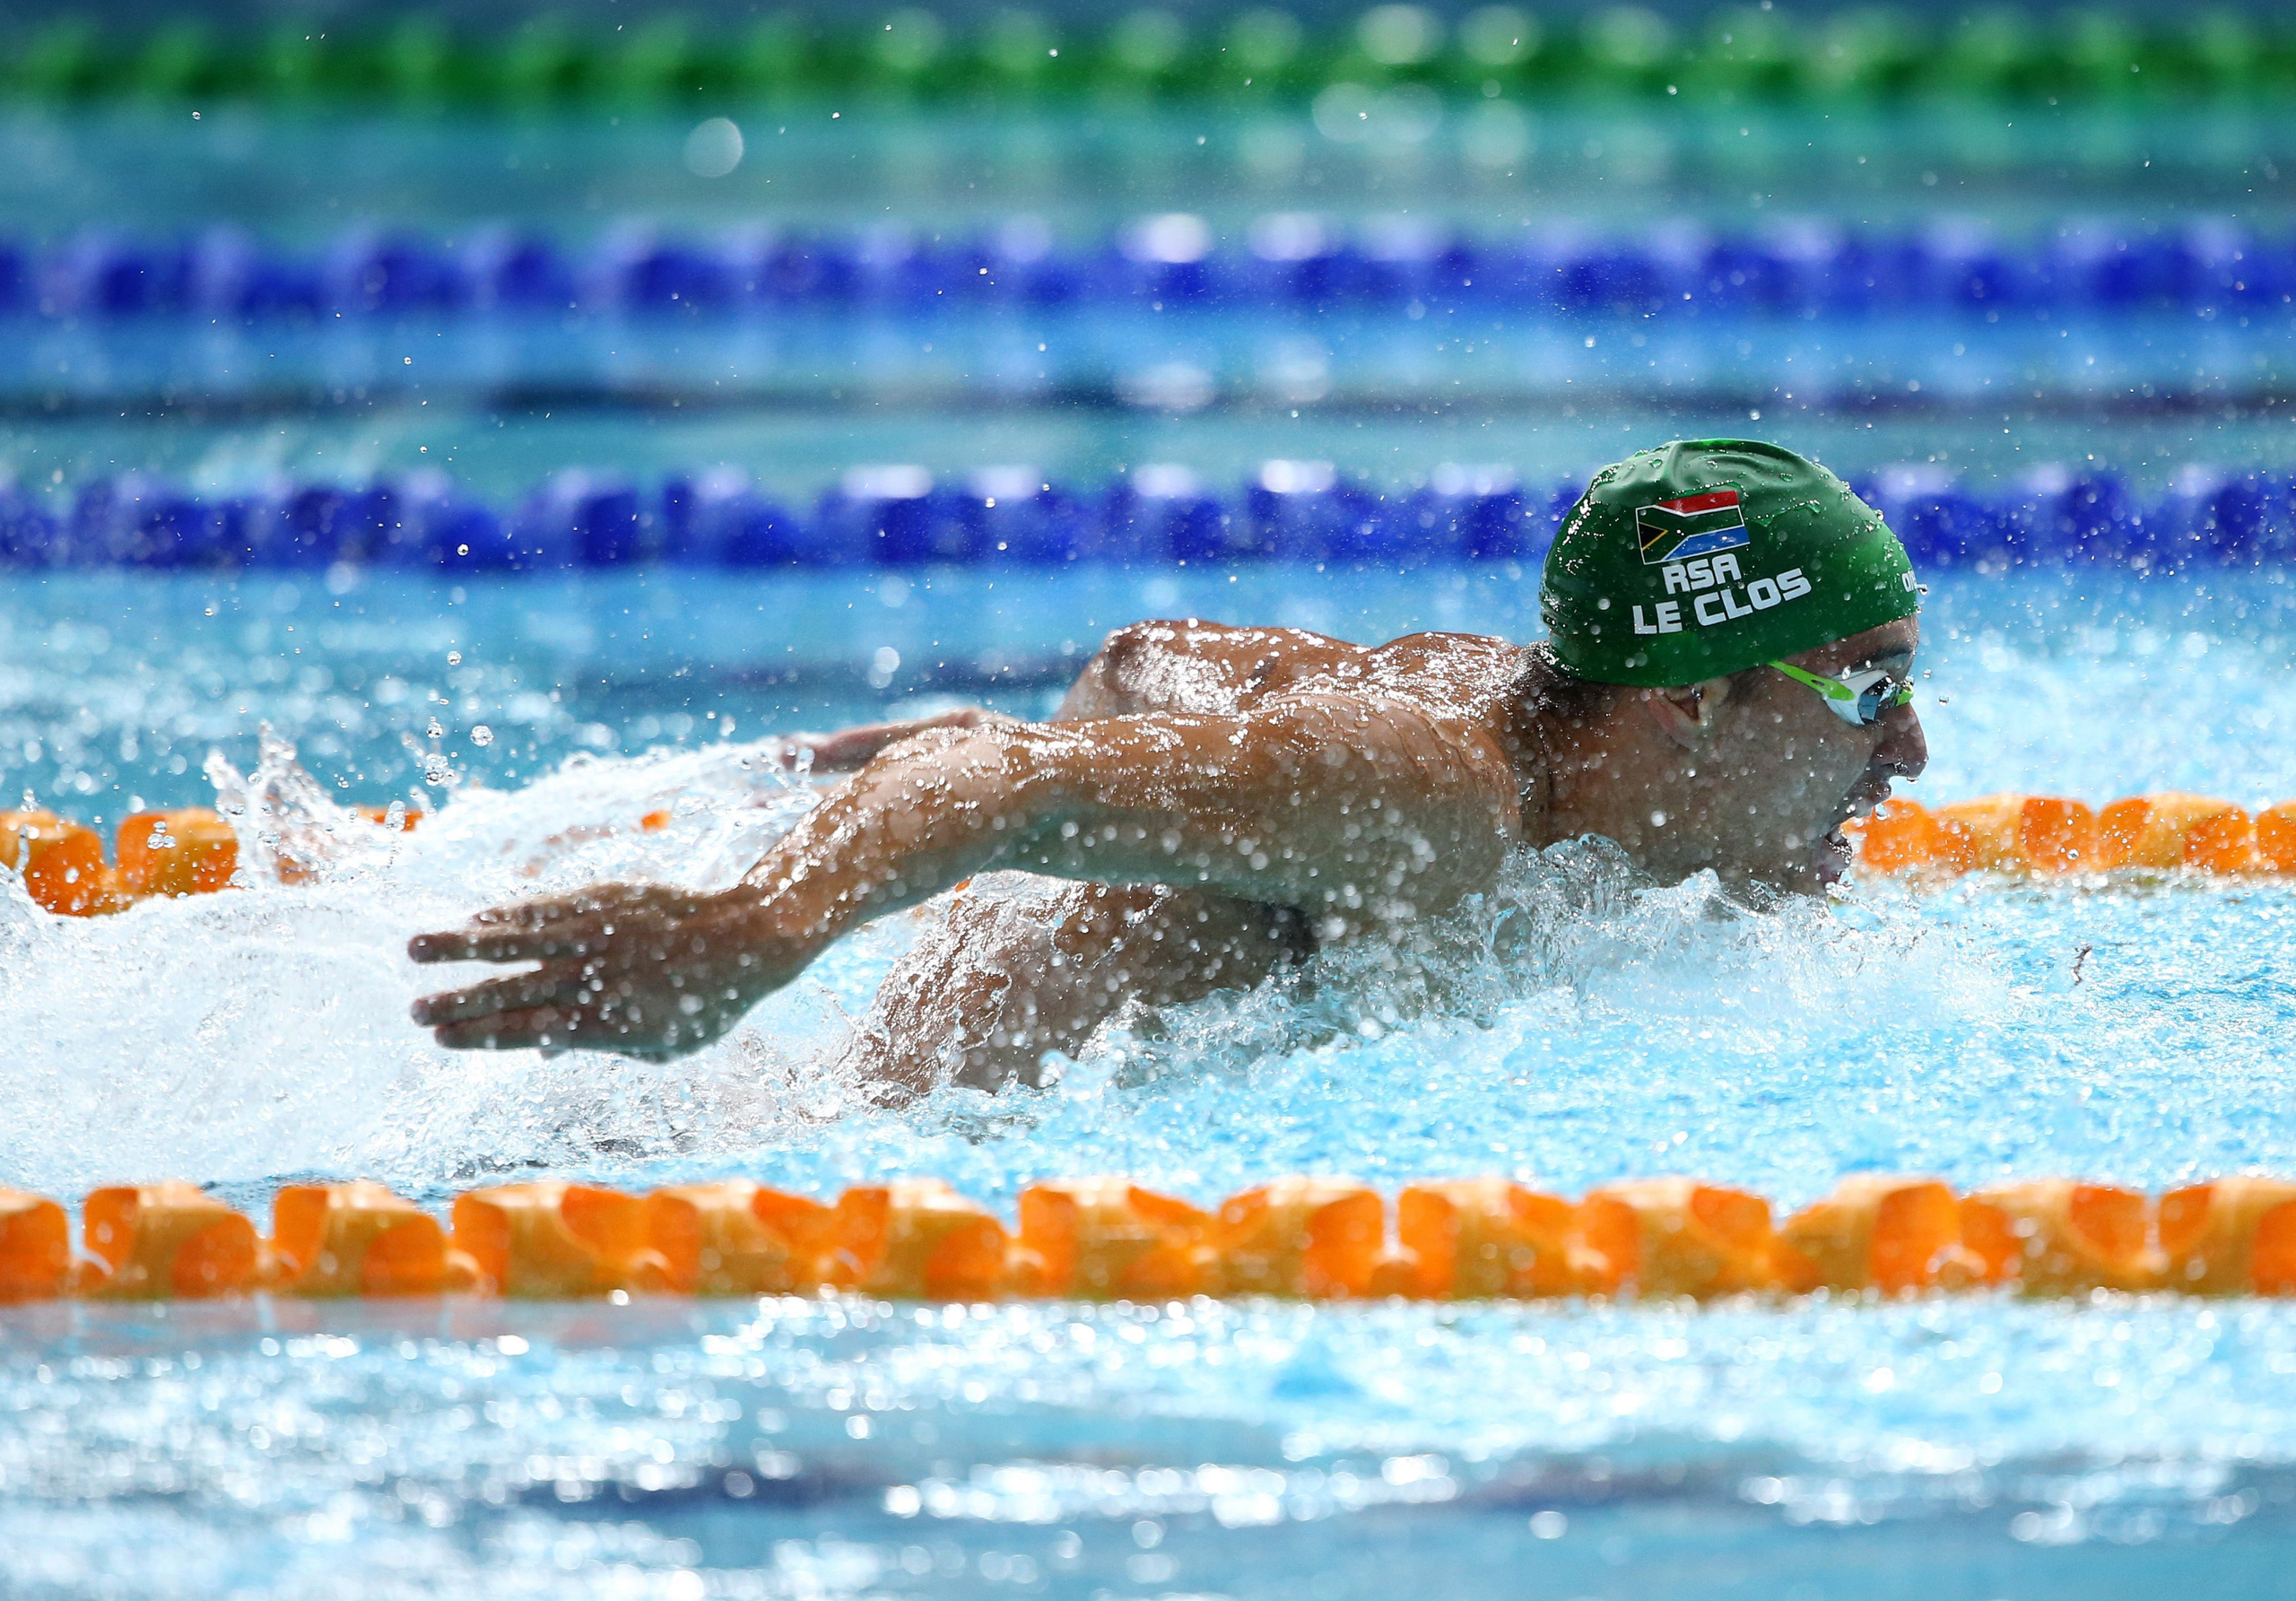 <strong>Chad le Clos, Swimming, South Africa</strong>He snatched gold from Michael Phelps in the 200-m butterfly in 2012 and is hoping to defend it against his archrival.